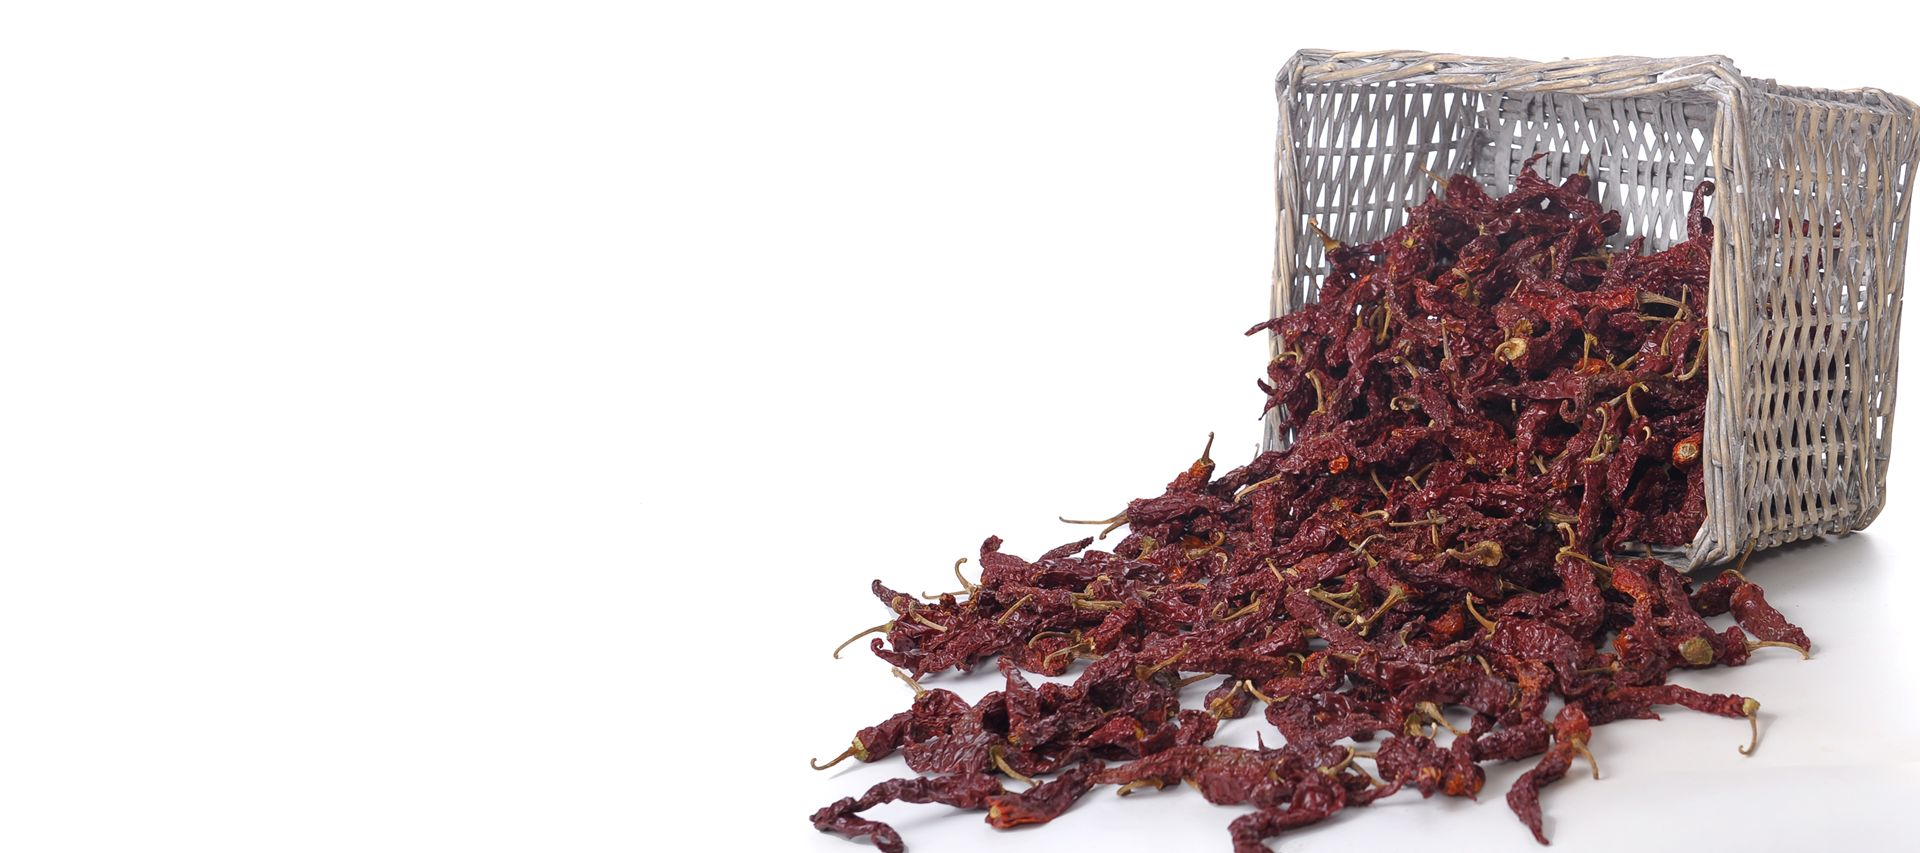 Byadgi Chilli, Kashmiri Chilli, Dry Red Chilli, B D Patil, B D Patil & Company, Chilli Merchants, Byadgi, Karnataka, India, Chilli, Chillies, Cilli powder, Red Chilli, Red Chilli Powder, Dry chilli, Chilli flakes, Chilli Seeds, Chilli Seed Oil, Paprika Oleoresin